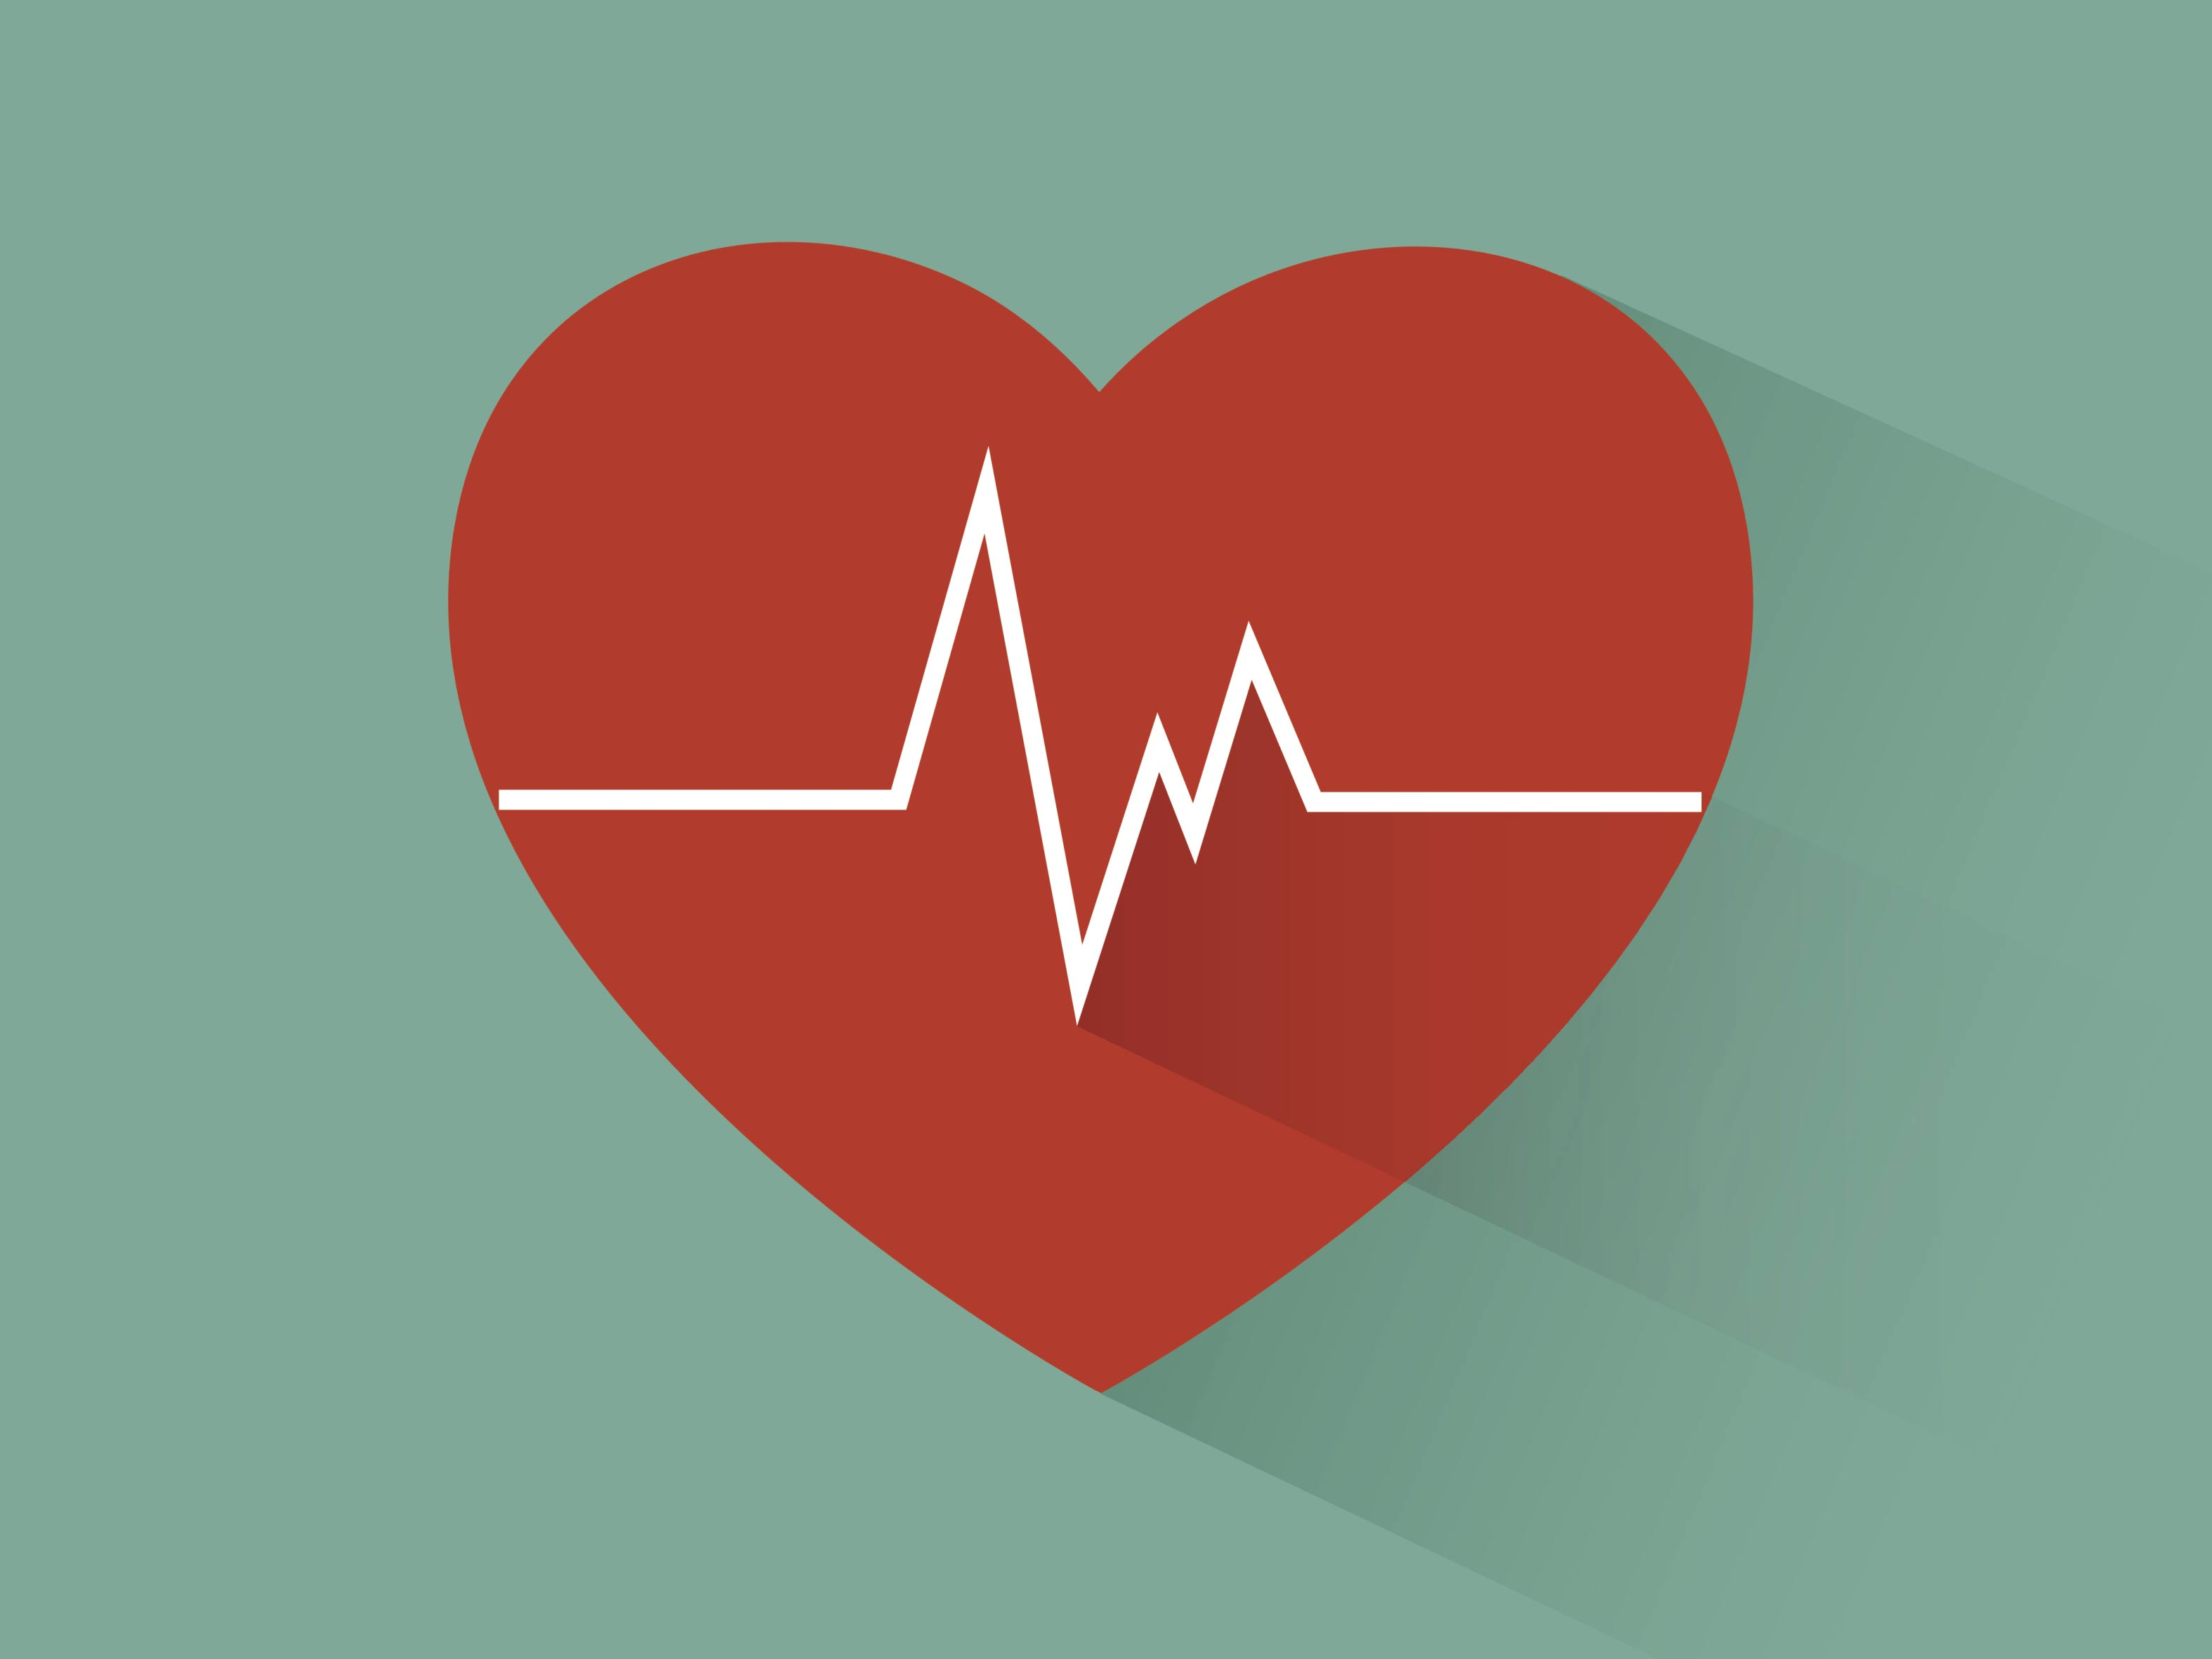 The trick to keeping your heart beating right